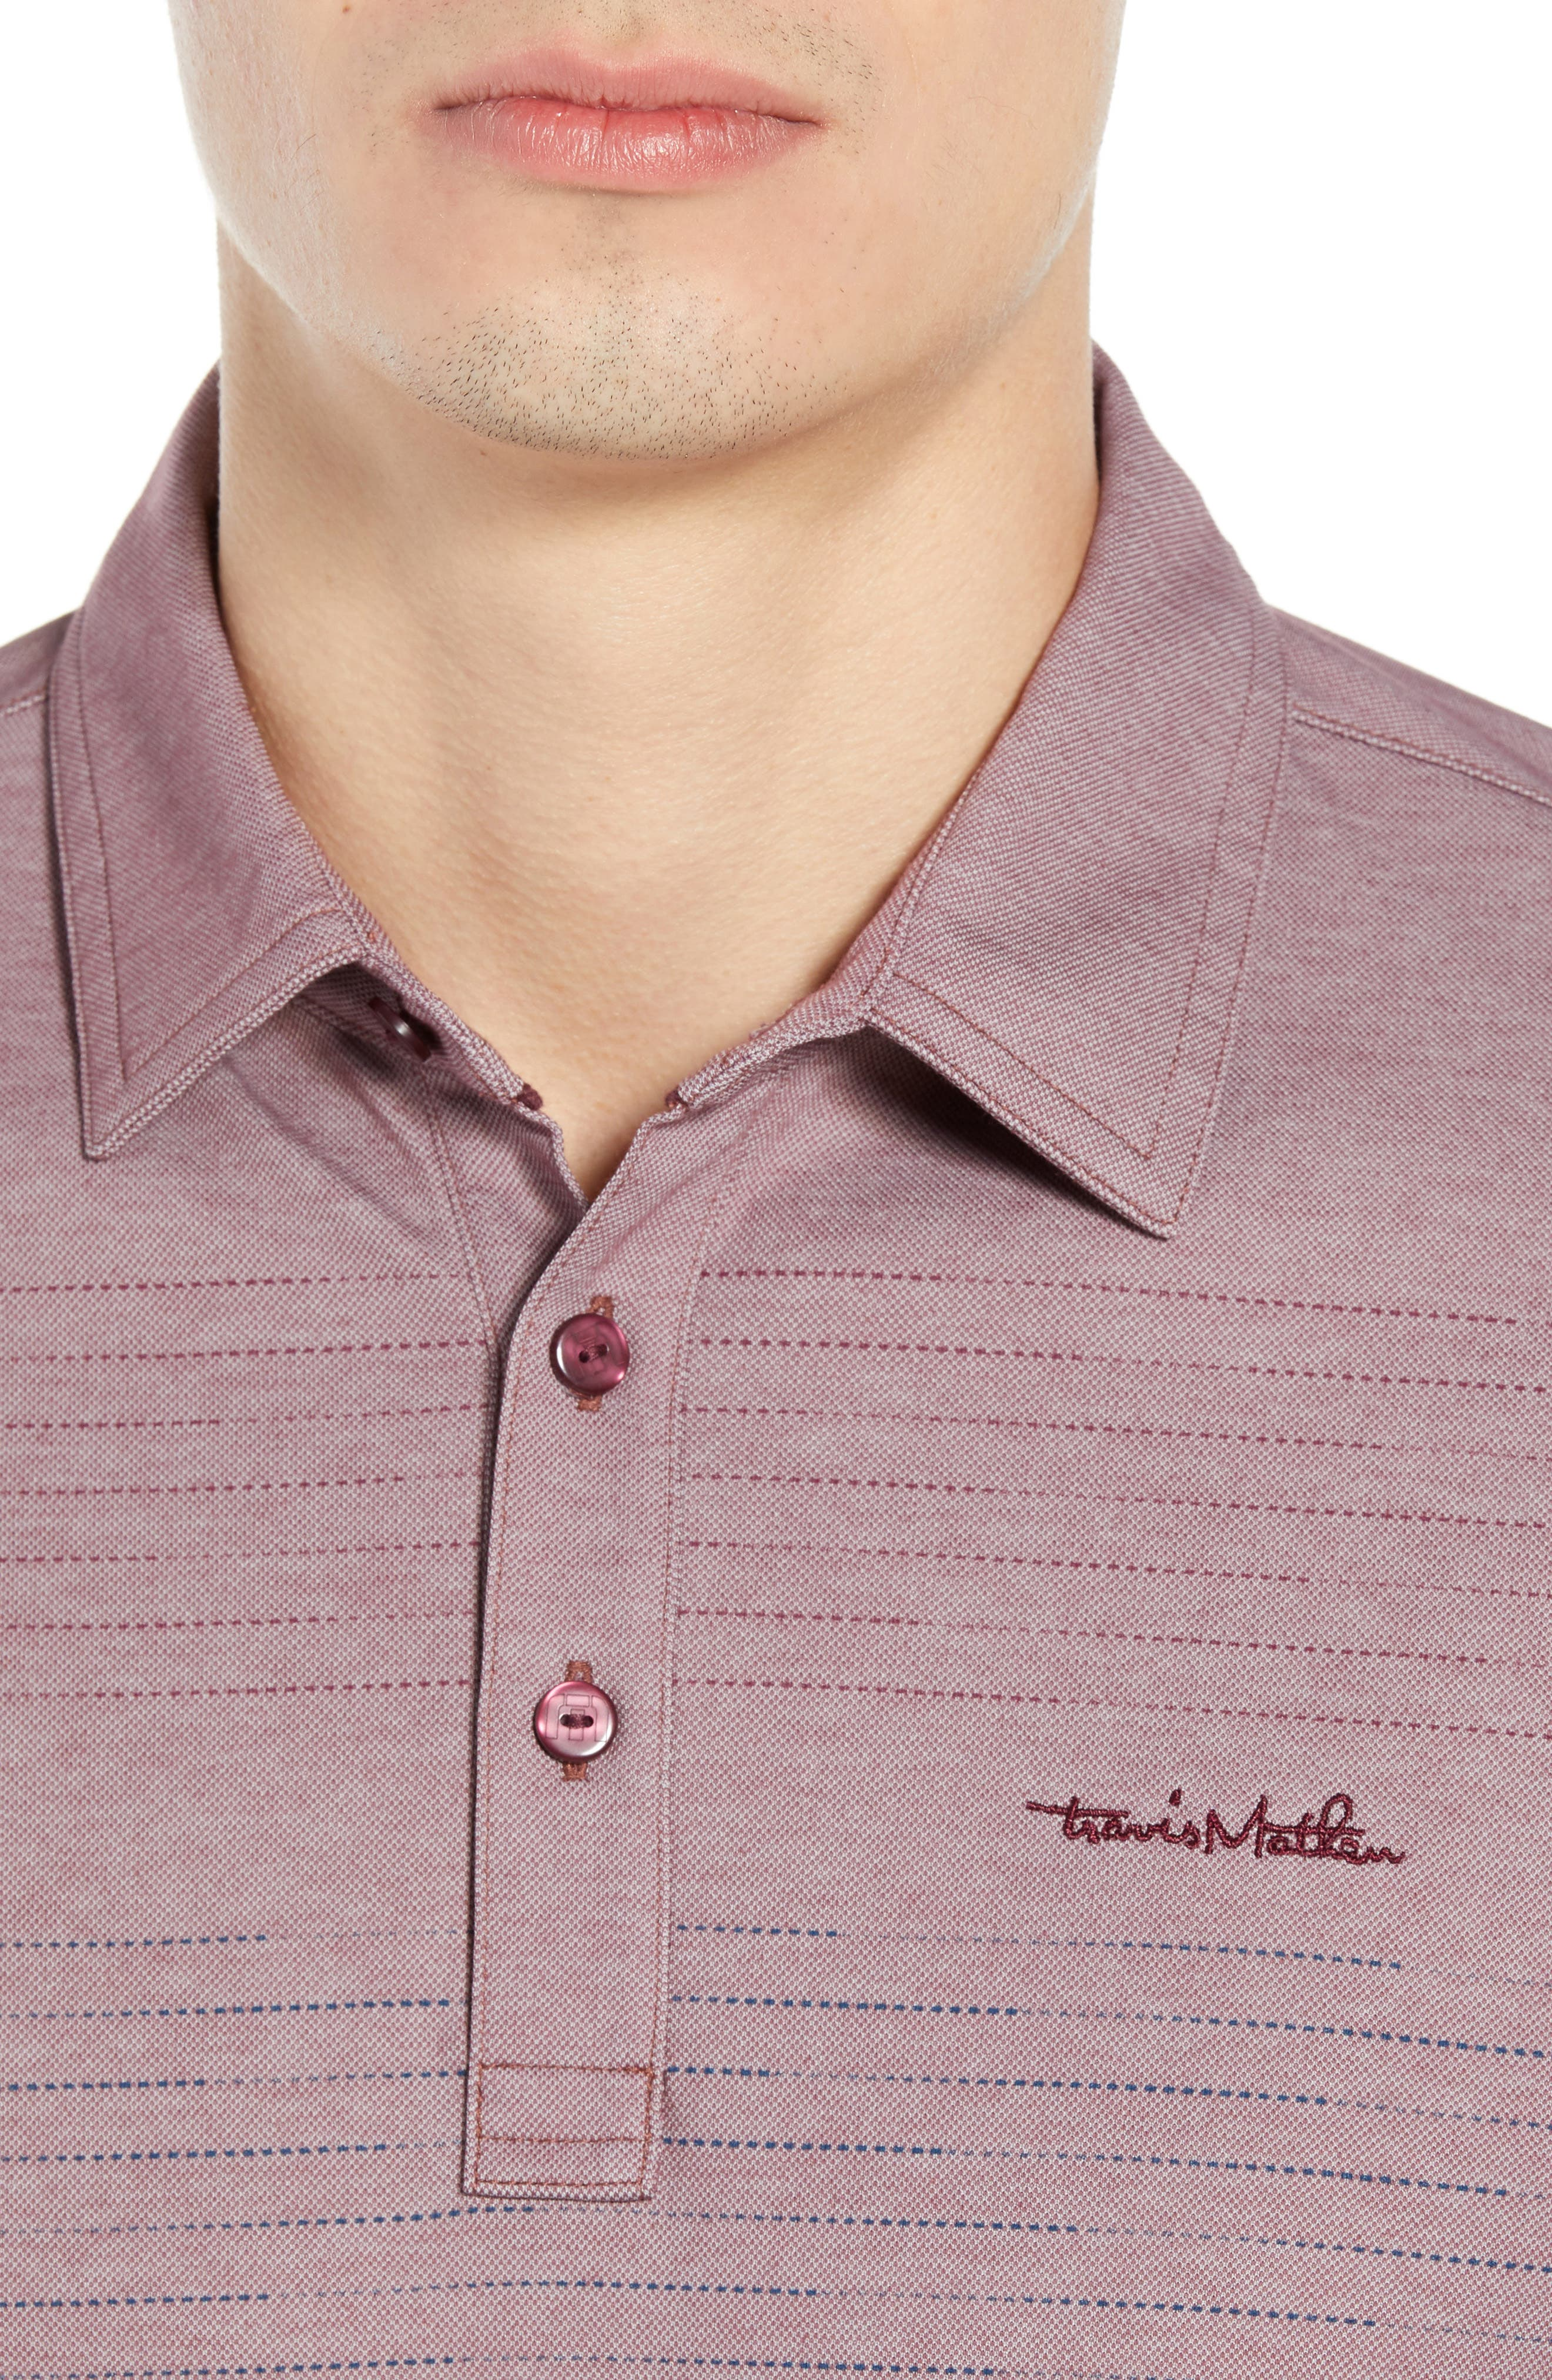 Asleep at the Wheel Regular Fit Polo,                             Alternate thumbnail 4, color,                             EGGPLANT/ MICRO CHIP